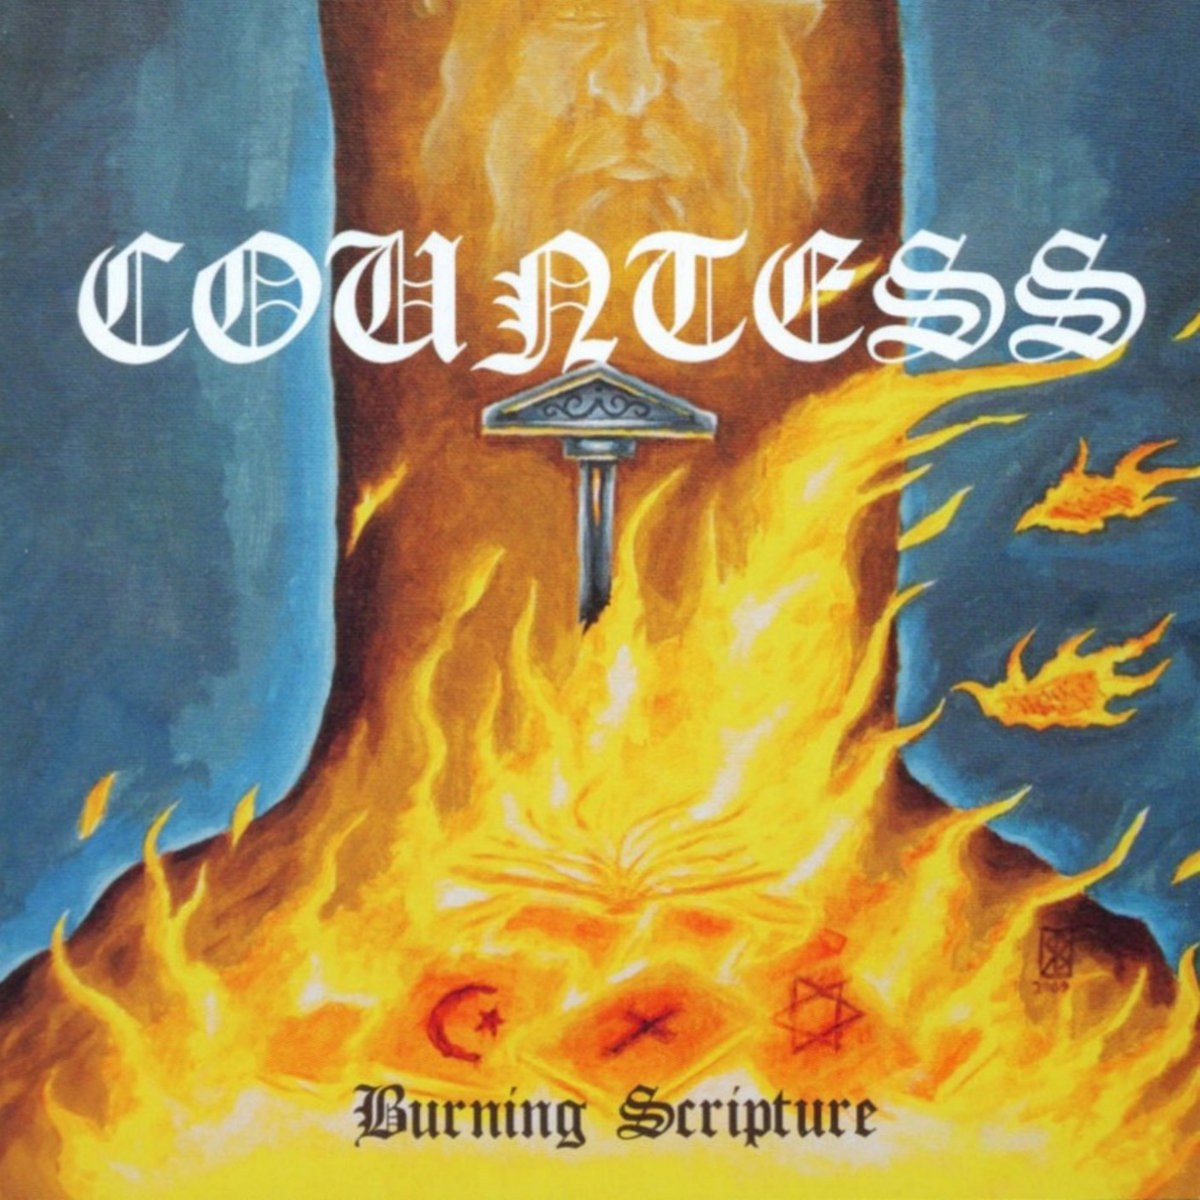 Review for Countess (NLD) - Burning Scripture